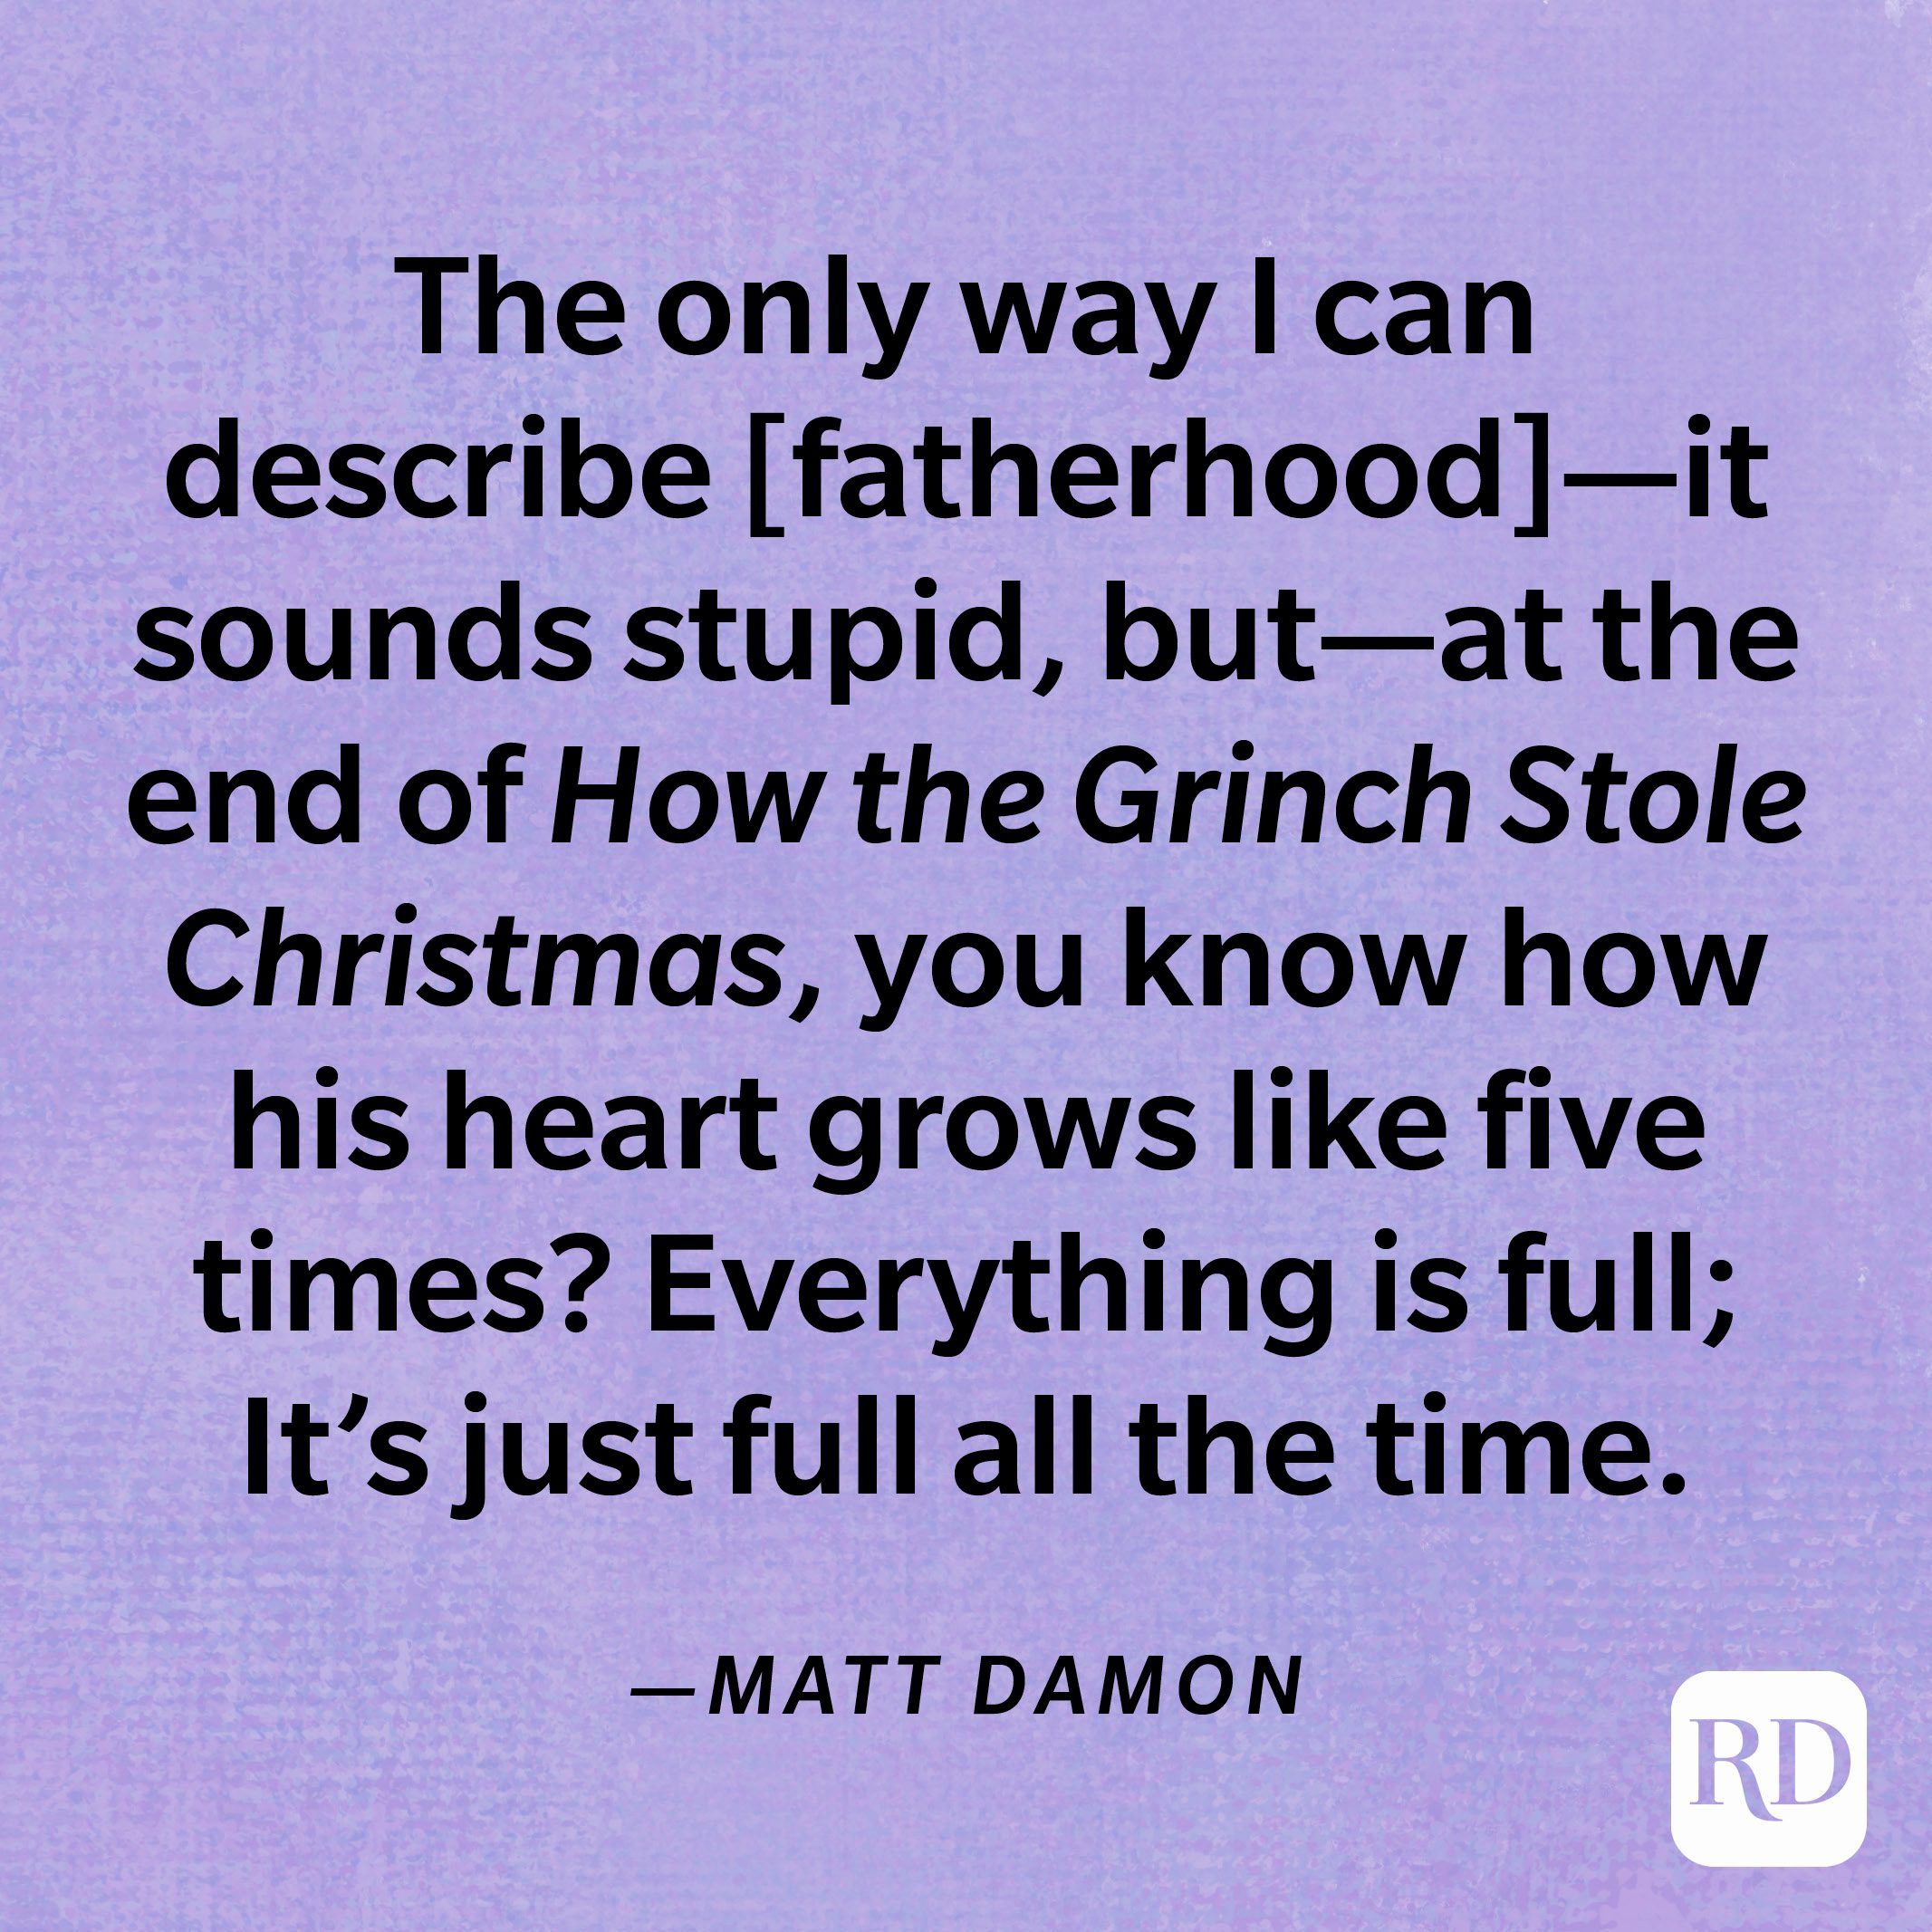 """""""The only way I can describe [fatherhood]—it sounds stupid, but—at the end ofHow the Grinch Stole Christmas, you know how his heart grows like five times? Everything is full; It's just full all the time.""""—Matt Damon"""